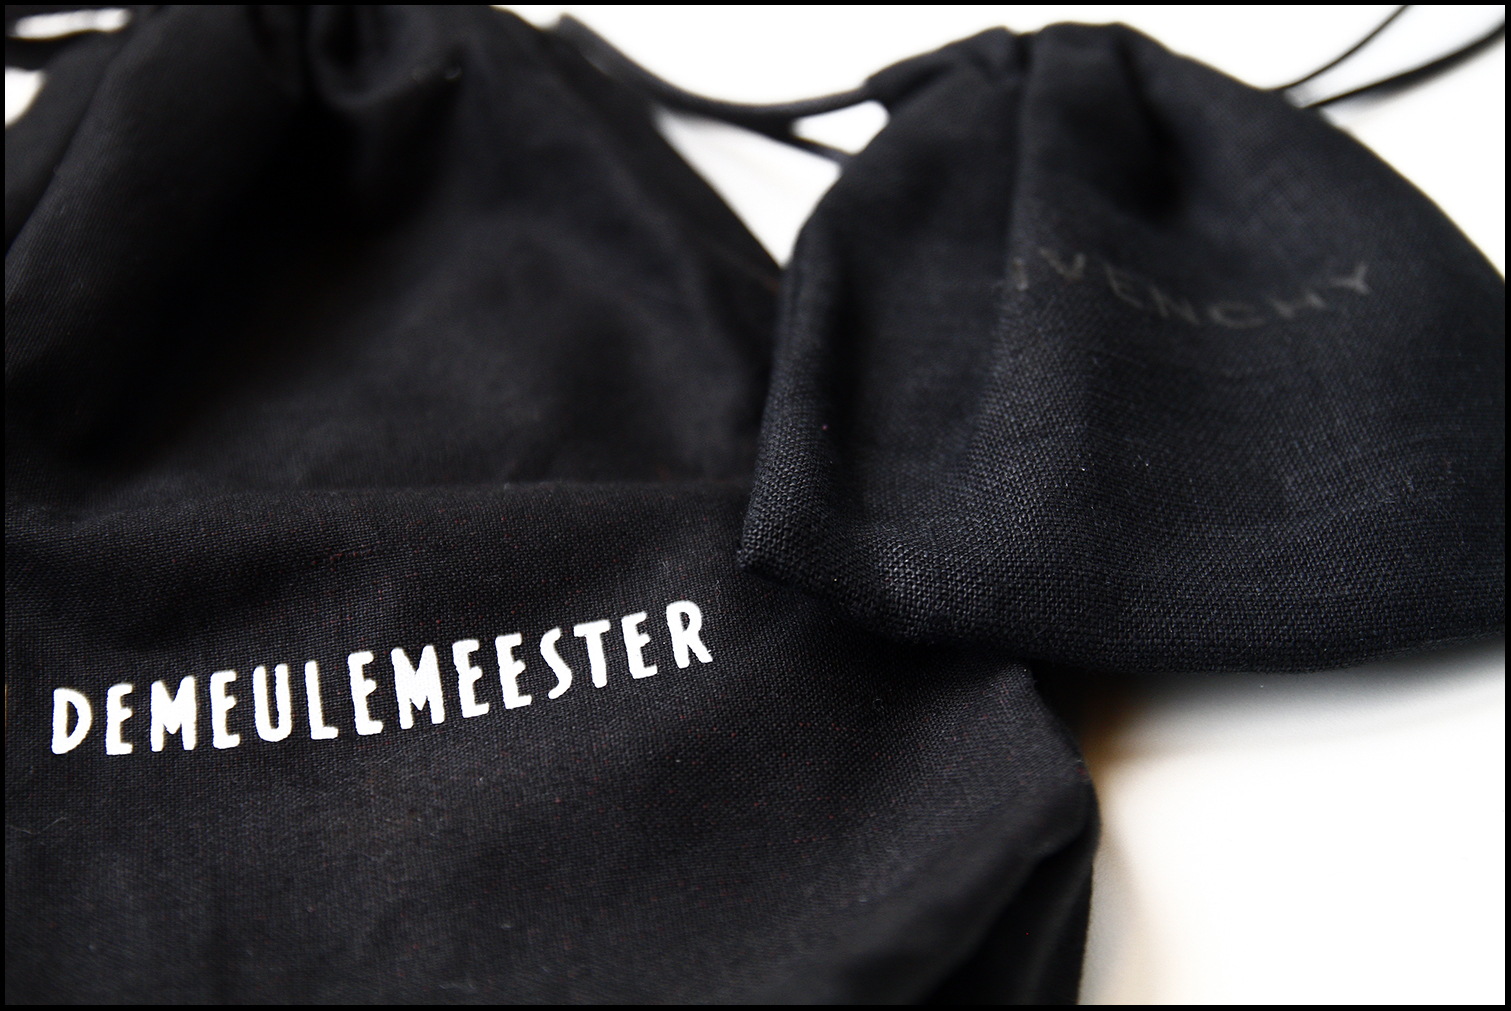 Tuukka13 - Greetings from Brussels - New Rick Owens Jacket, Ann Demeulemeester Neck Pouch and Givenchy - At Pantone Hotel - 2